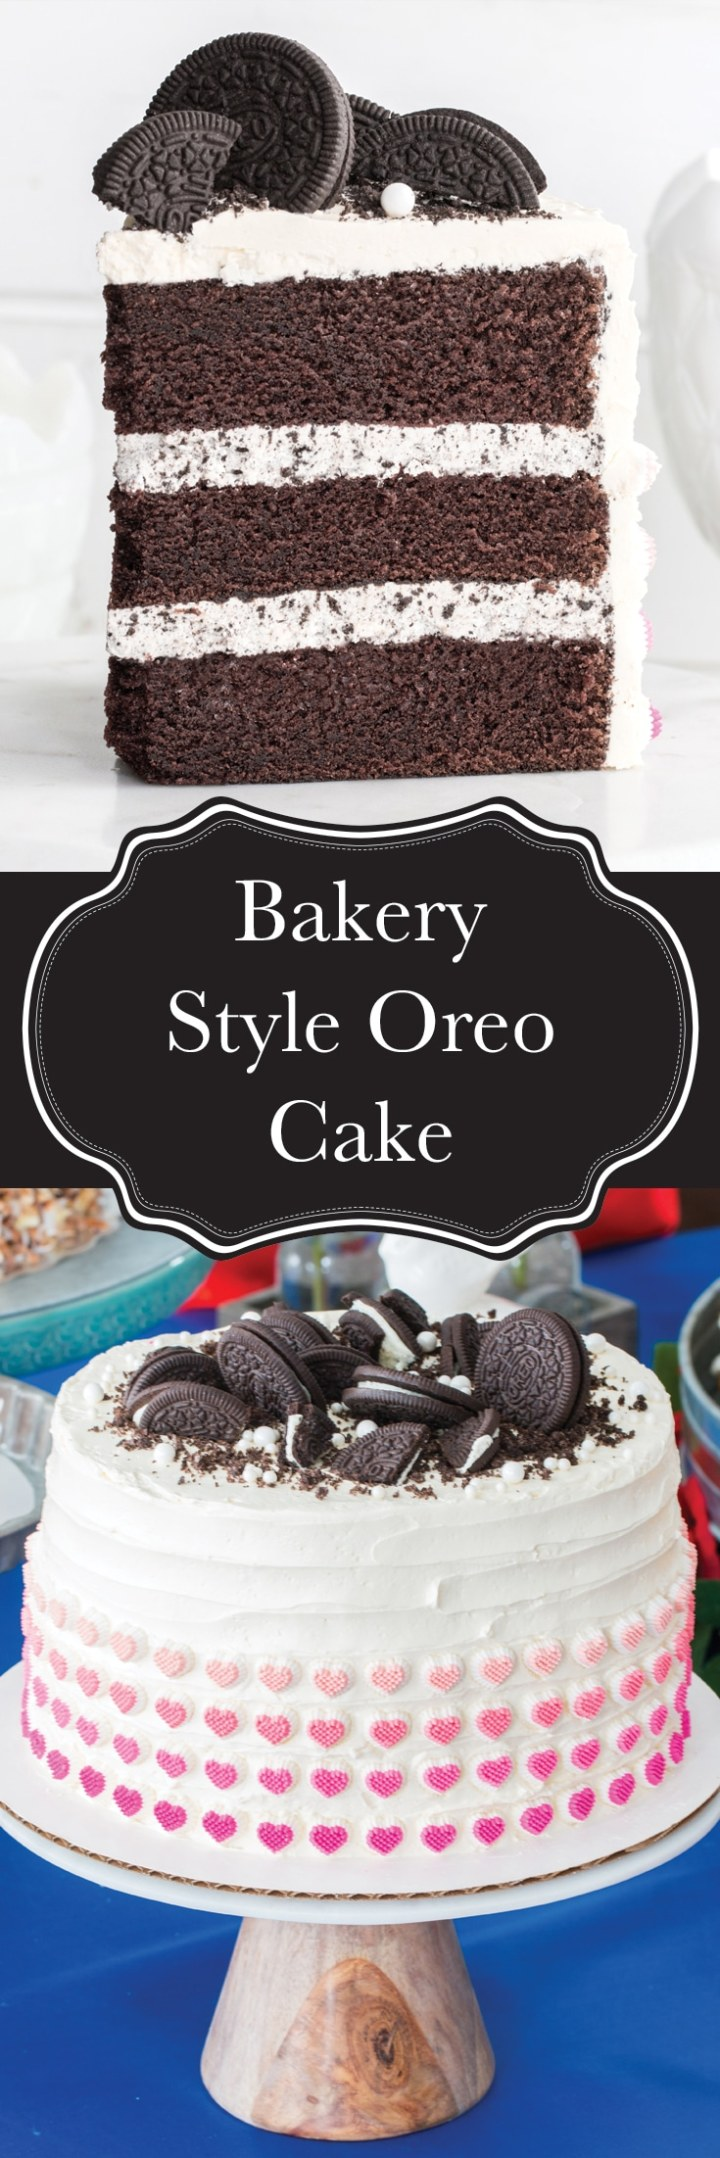 A bakery style Oreo cake you cake make at home! Rich and moist chocolate cake layers with an Oreo buttercream, and then covered with a vanilla buttercream. It's the perfect cake for the kids (and the kids in all of us!).